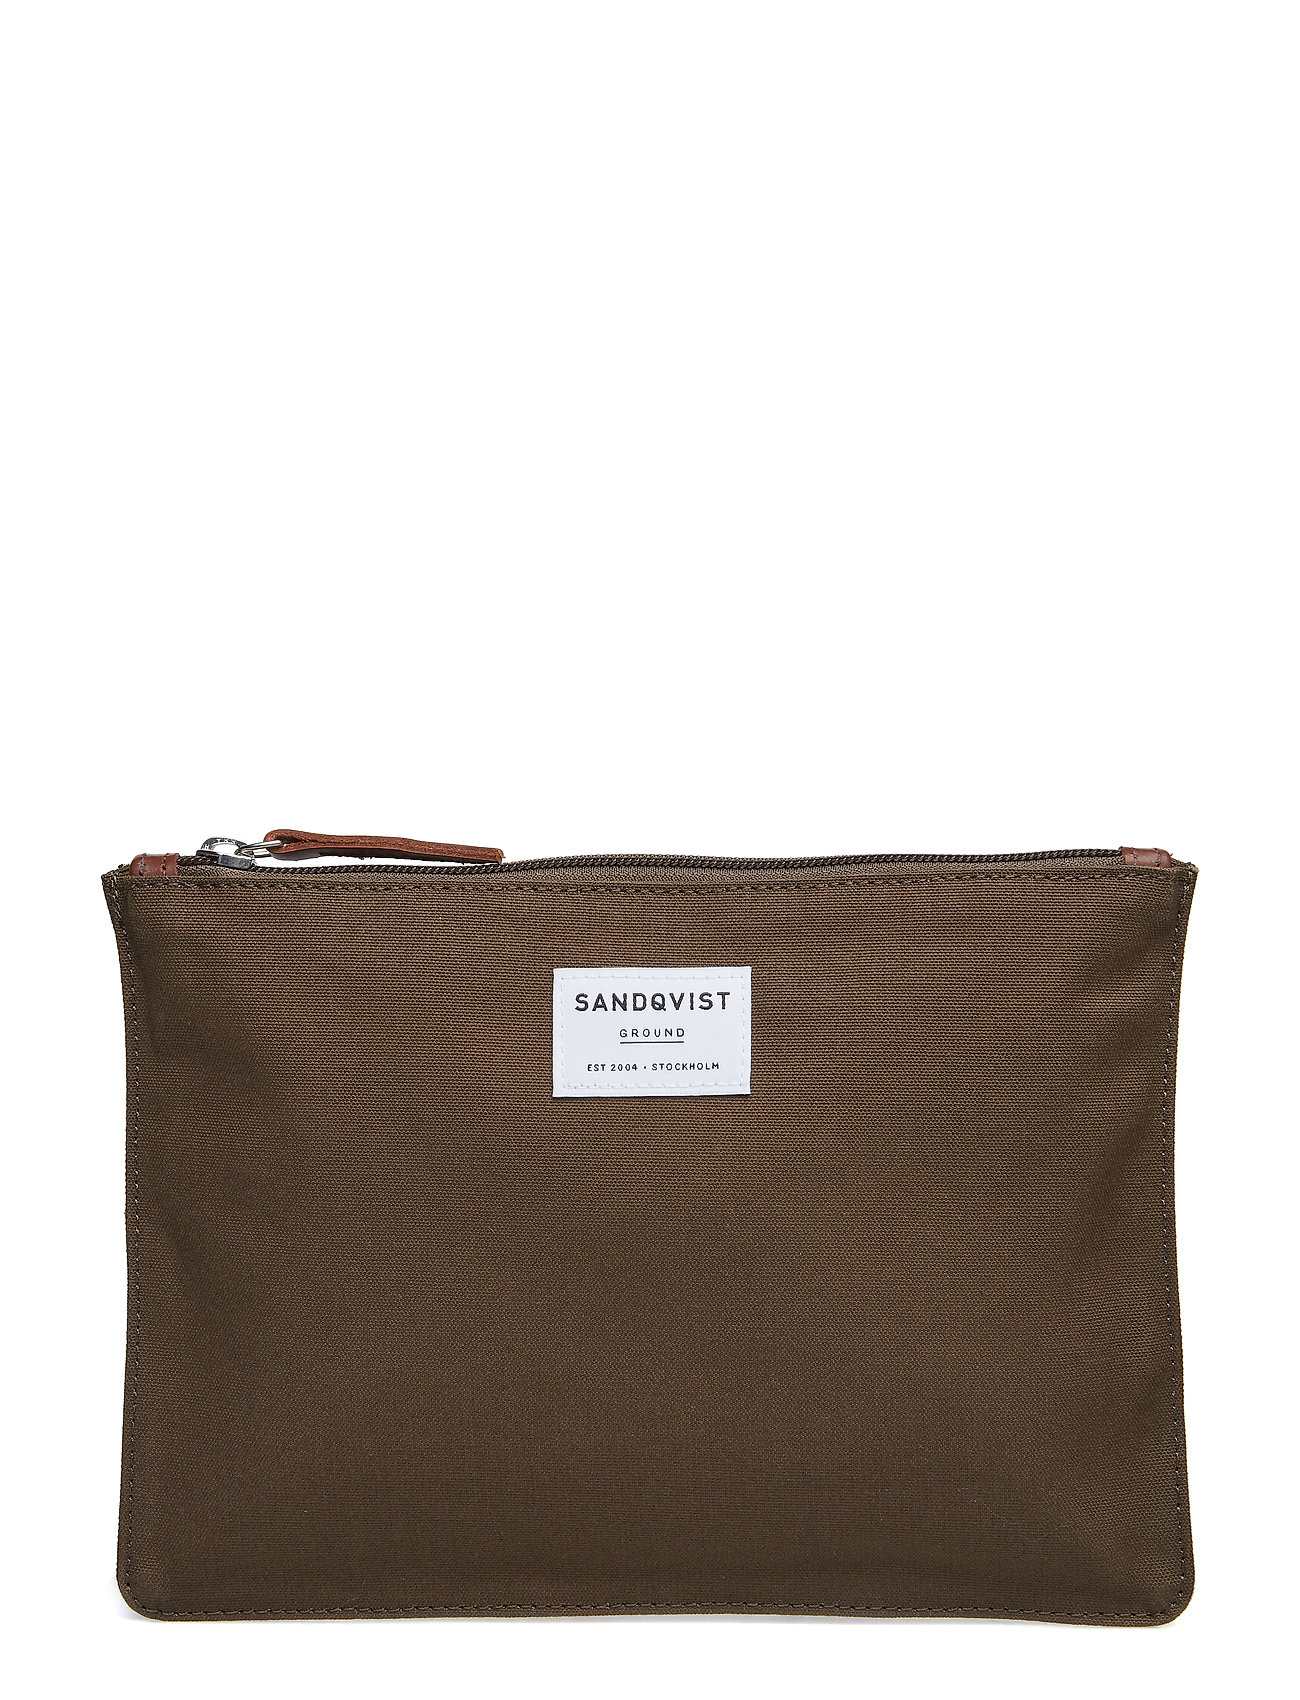 SANDQVIST TURE M - OLIVE WITH COGNAC BROWN LEATHER